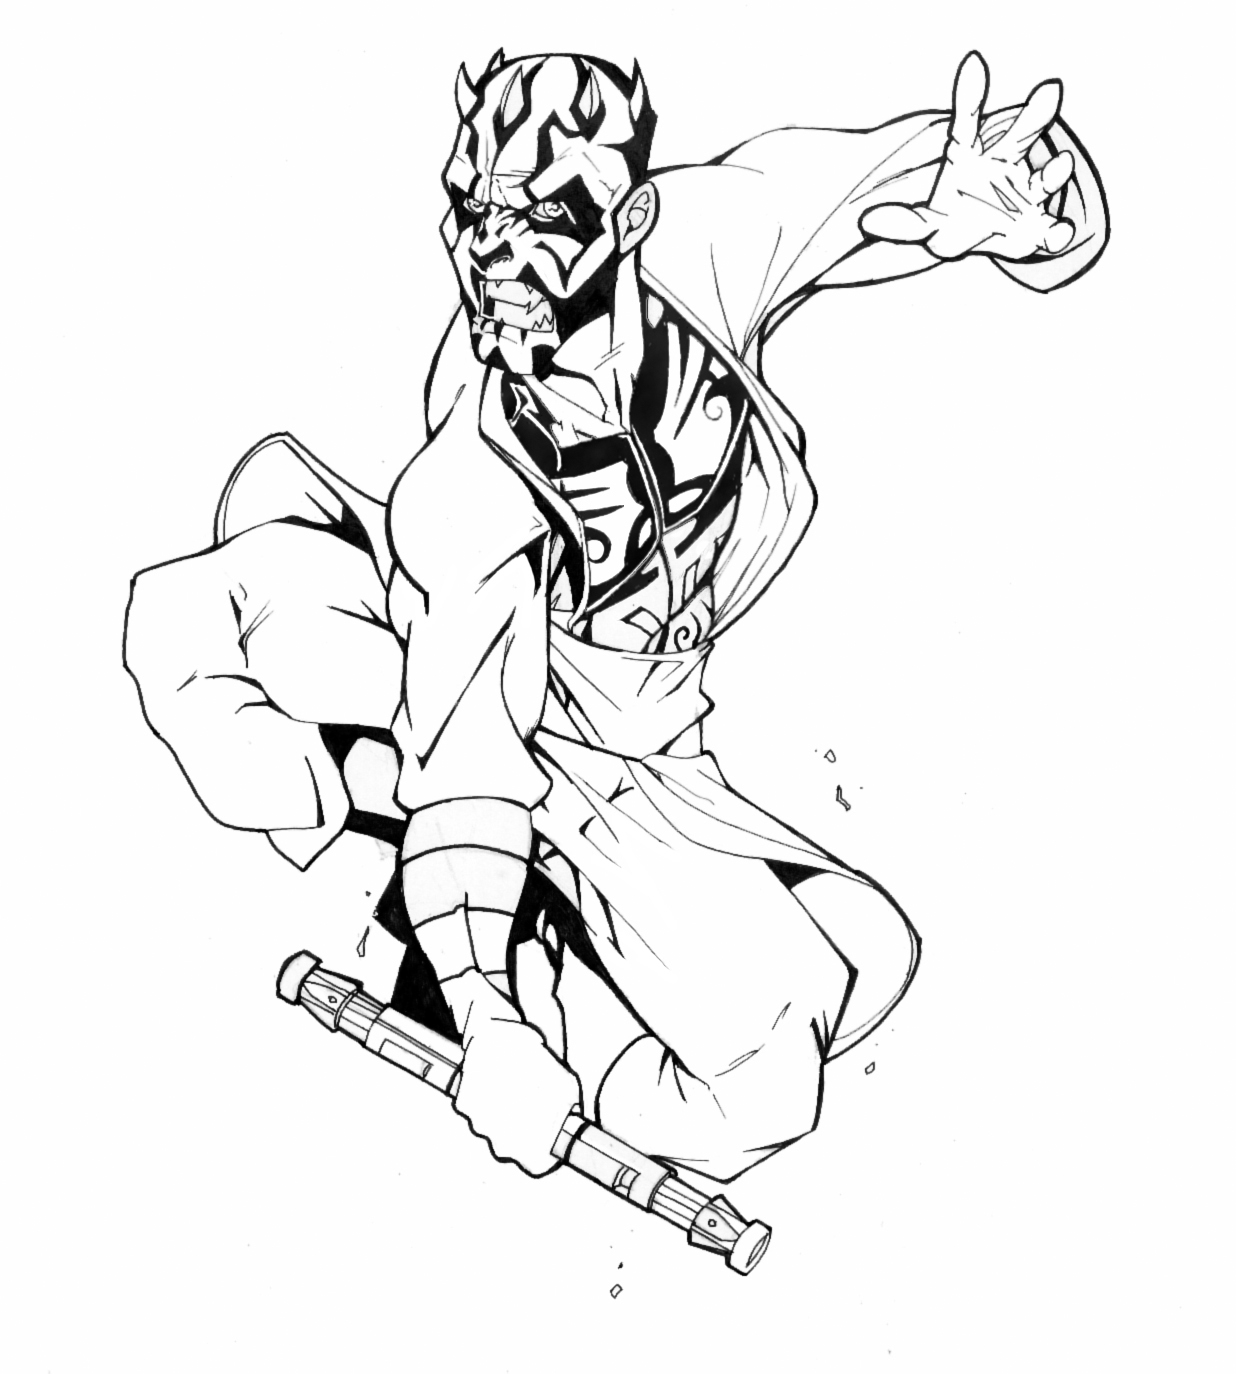 Star Wars Darth Maul 25 Coloriage Star Wars Coloriages Pour Enfants